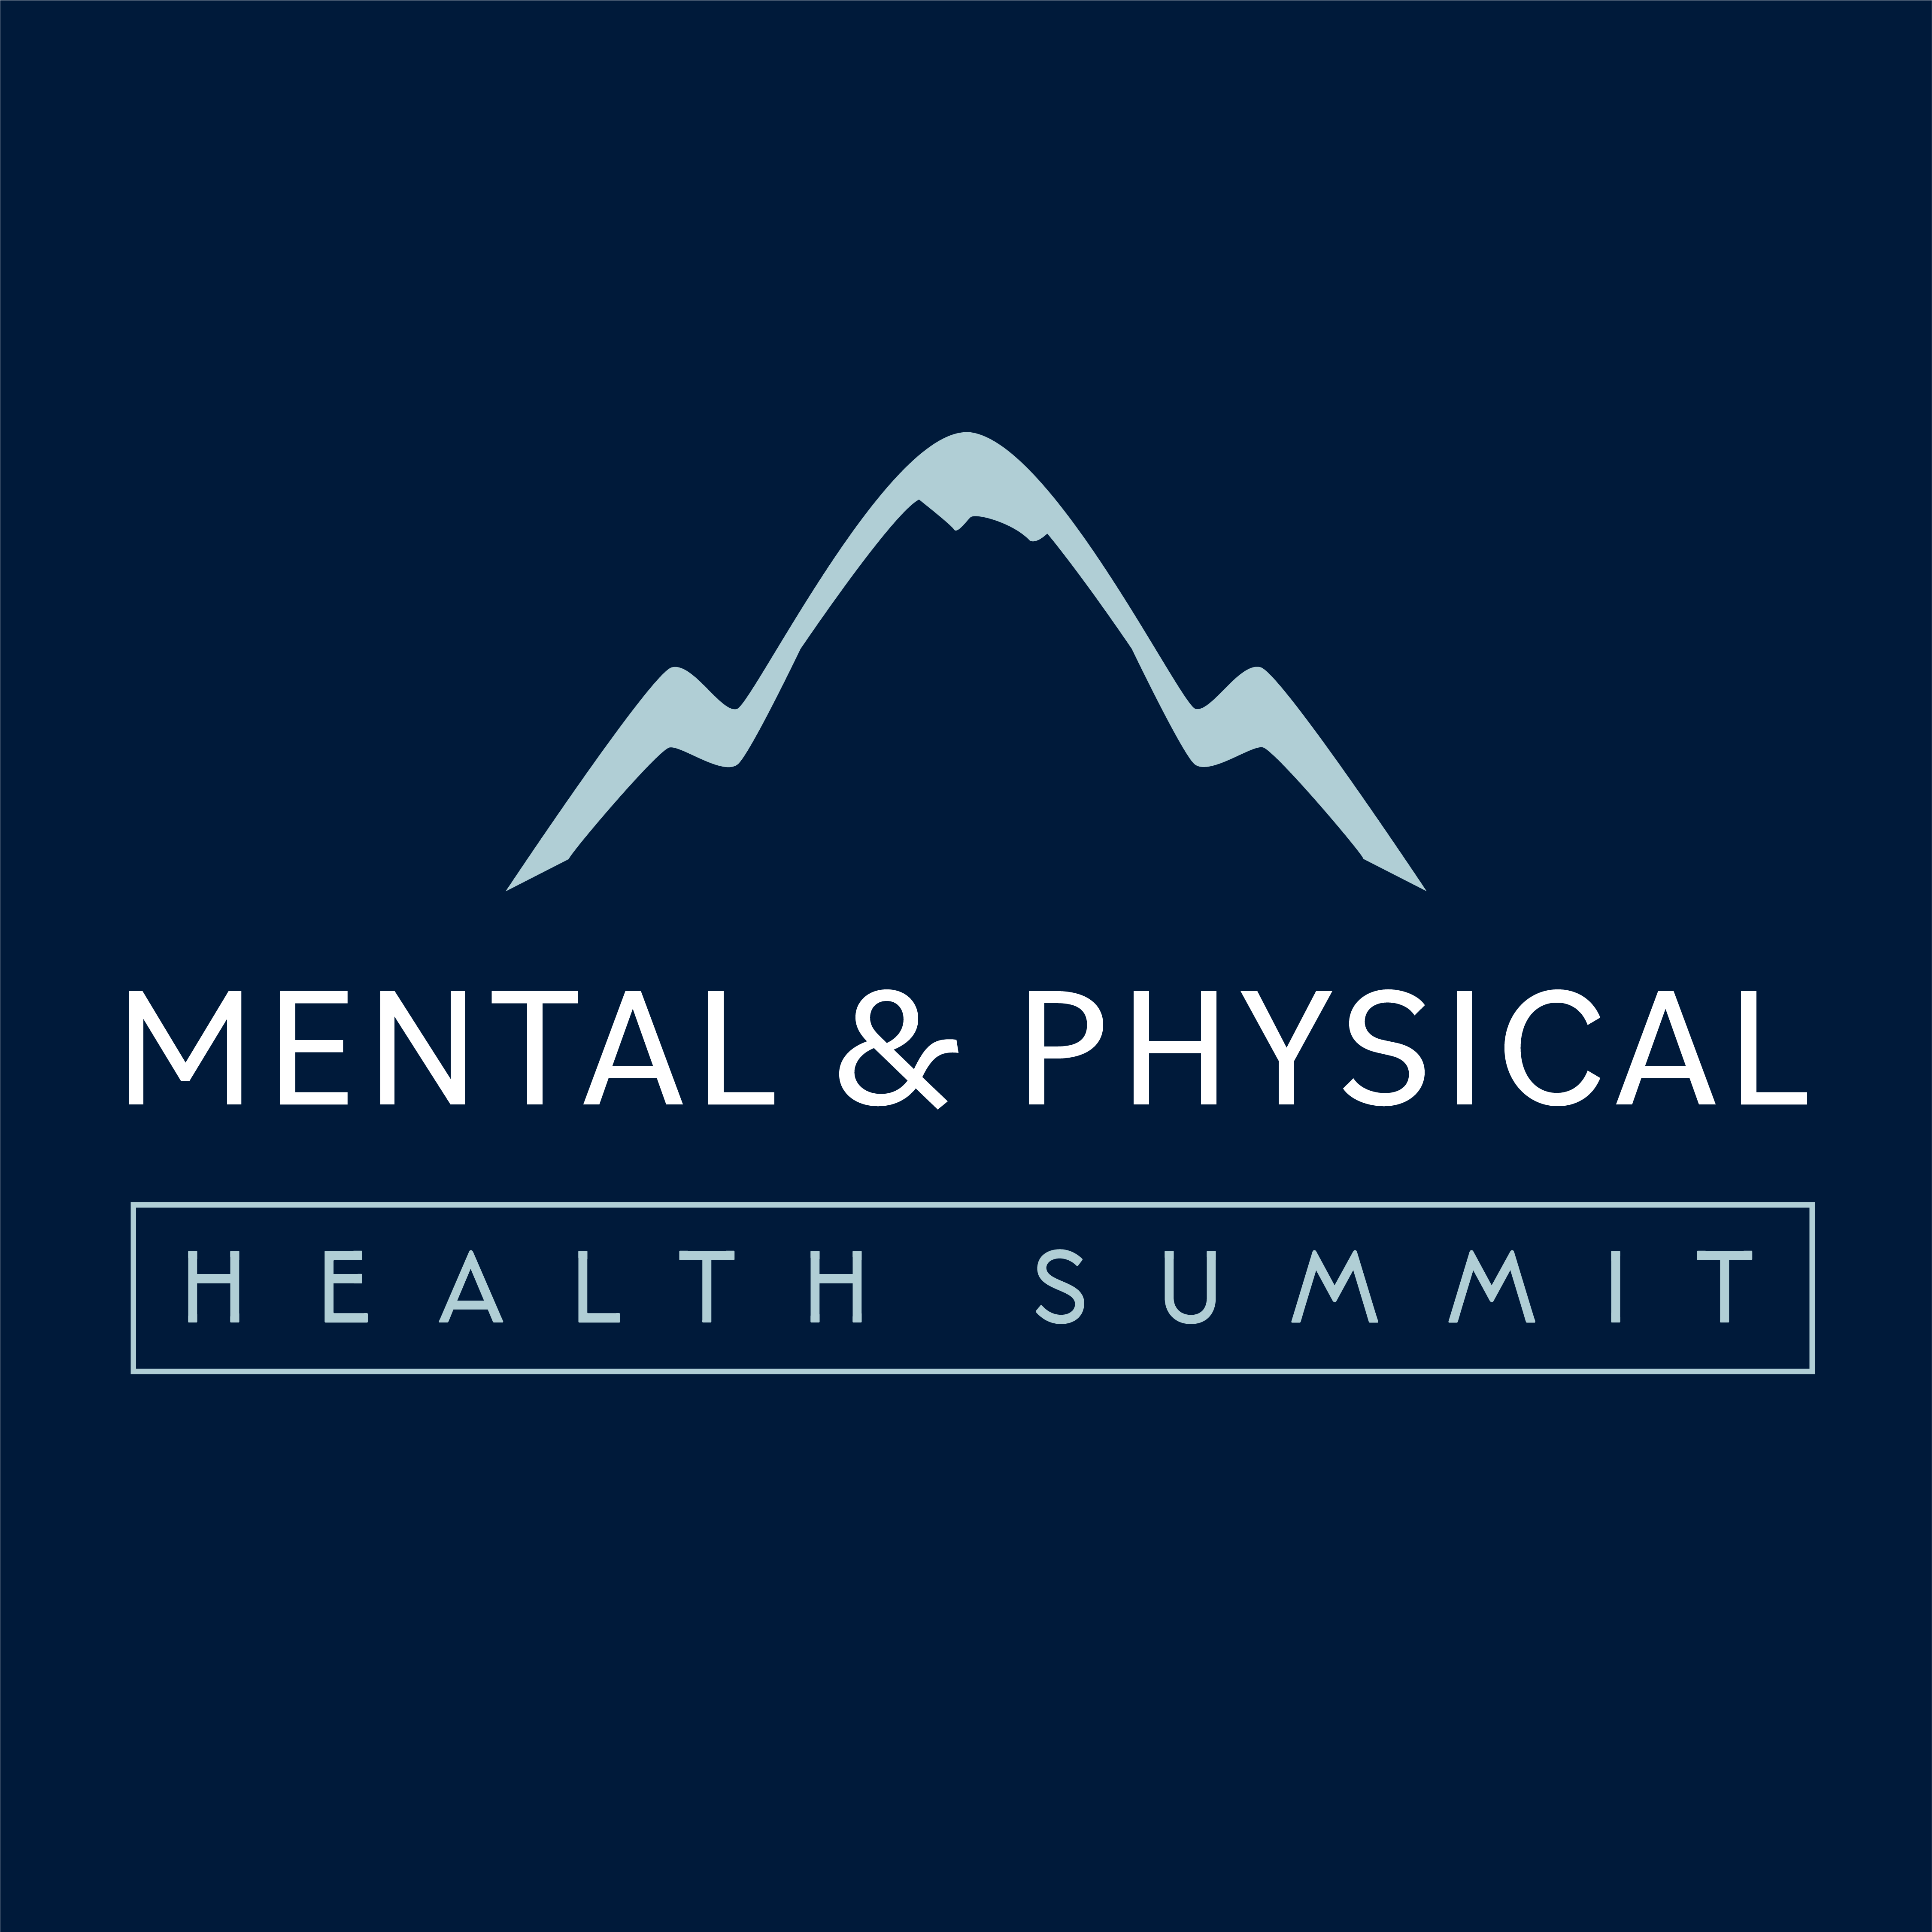 Mental & Physical Health Summit 2021 Press Release